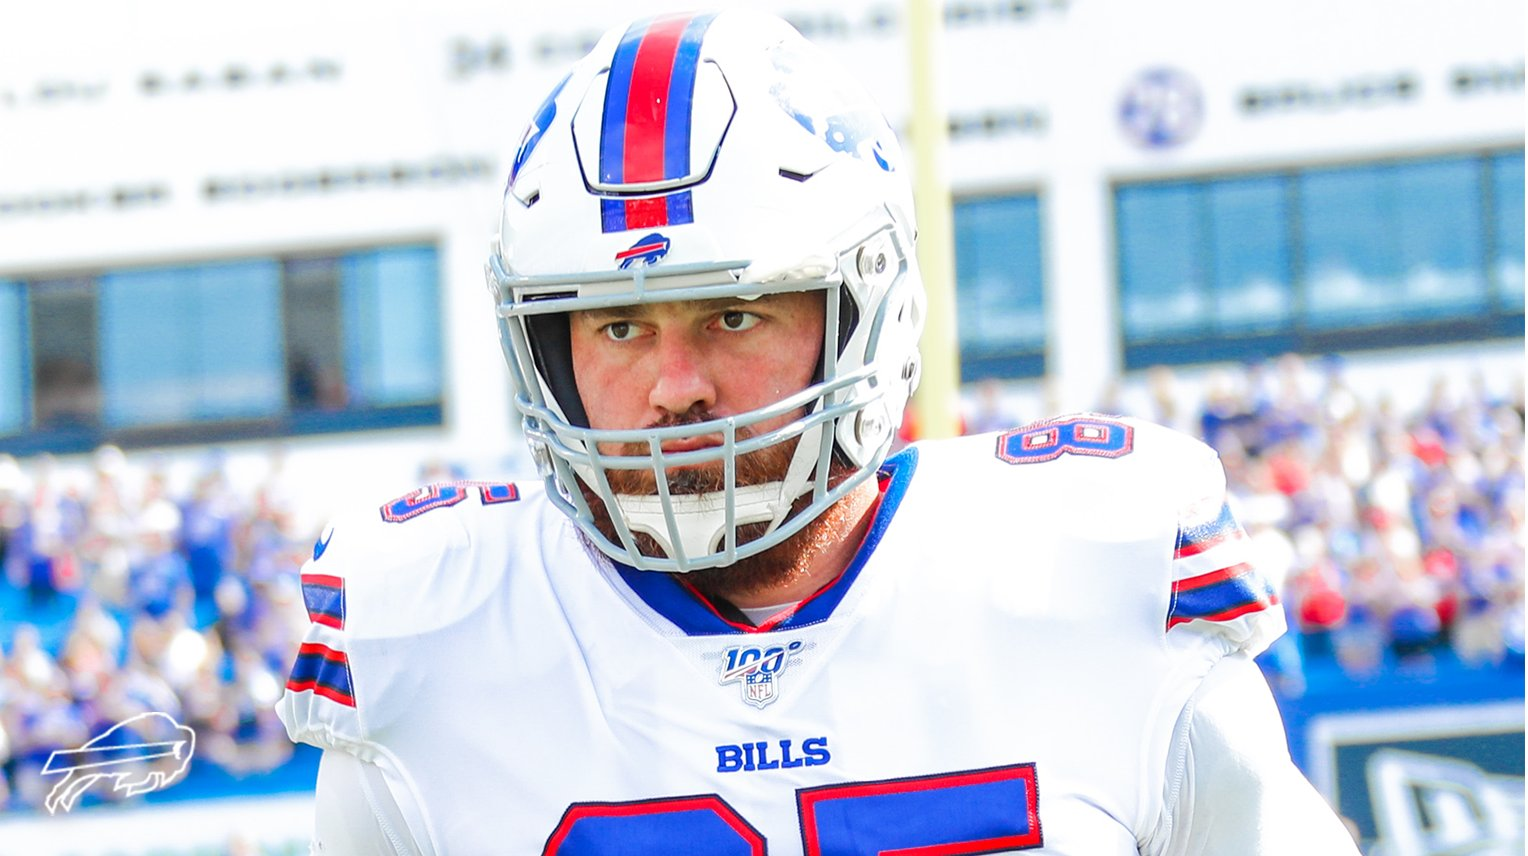 Bills activate TE Lee Smith from Reserve/COVID-19 list